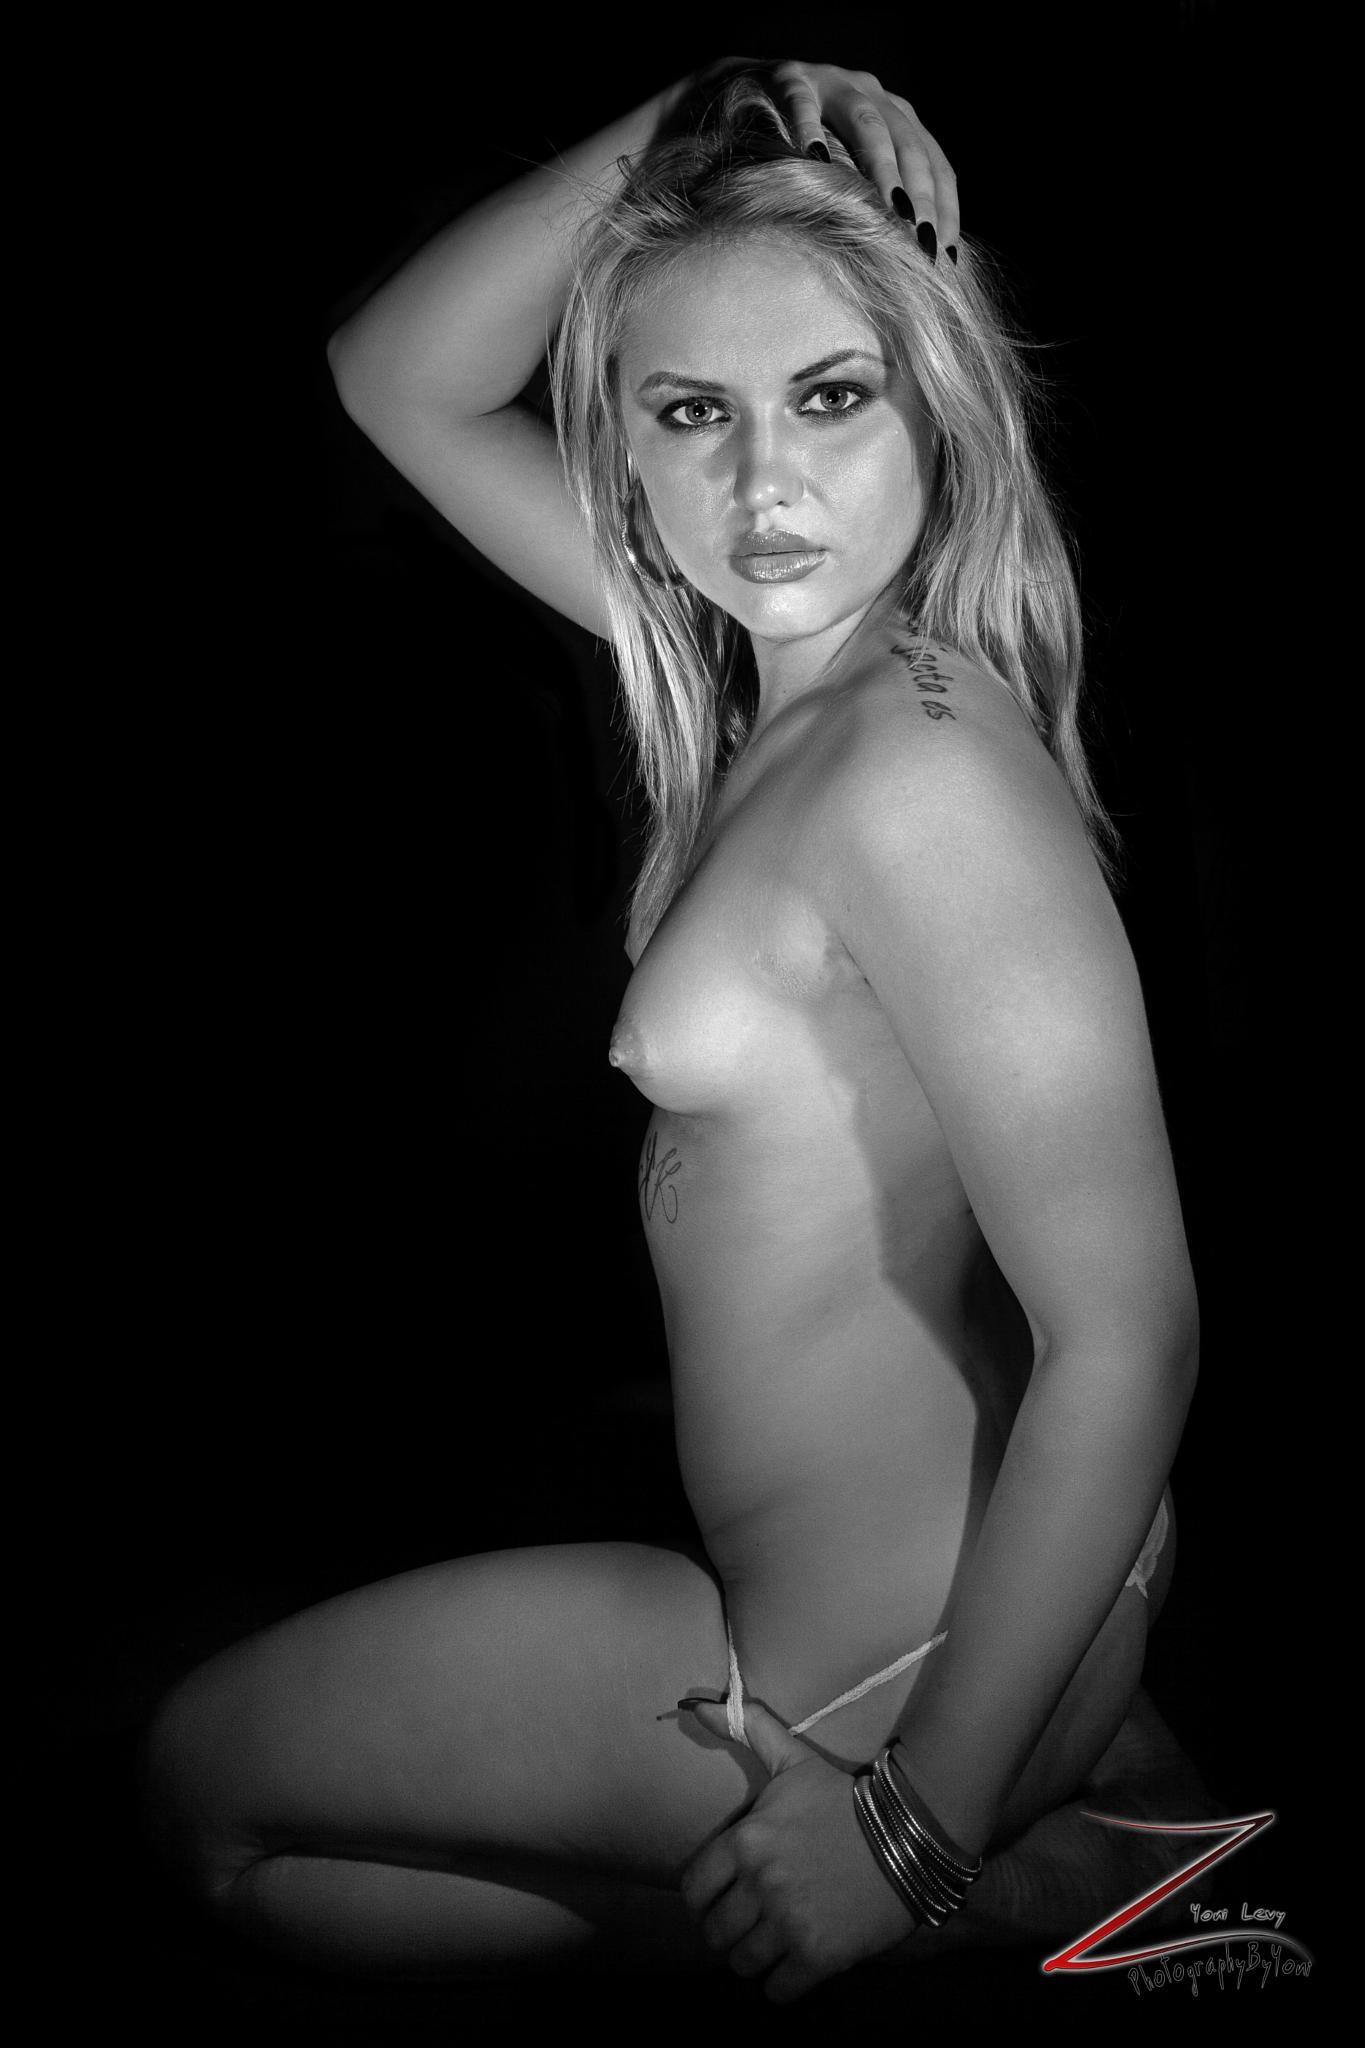 Nude By Yoni Levy / Photography By yoni  by Photographybyyoni